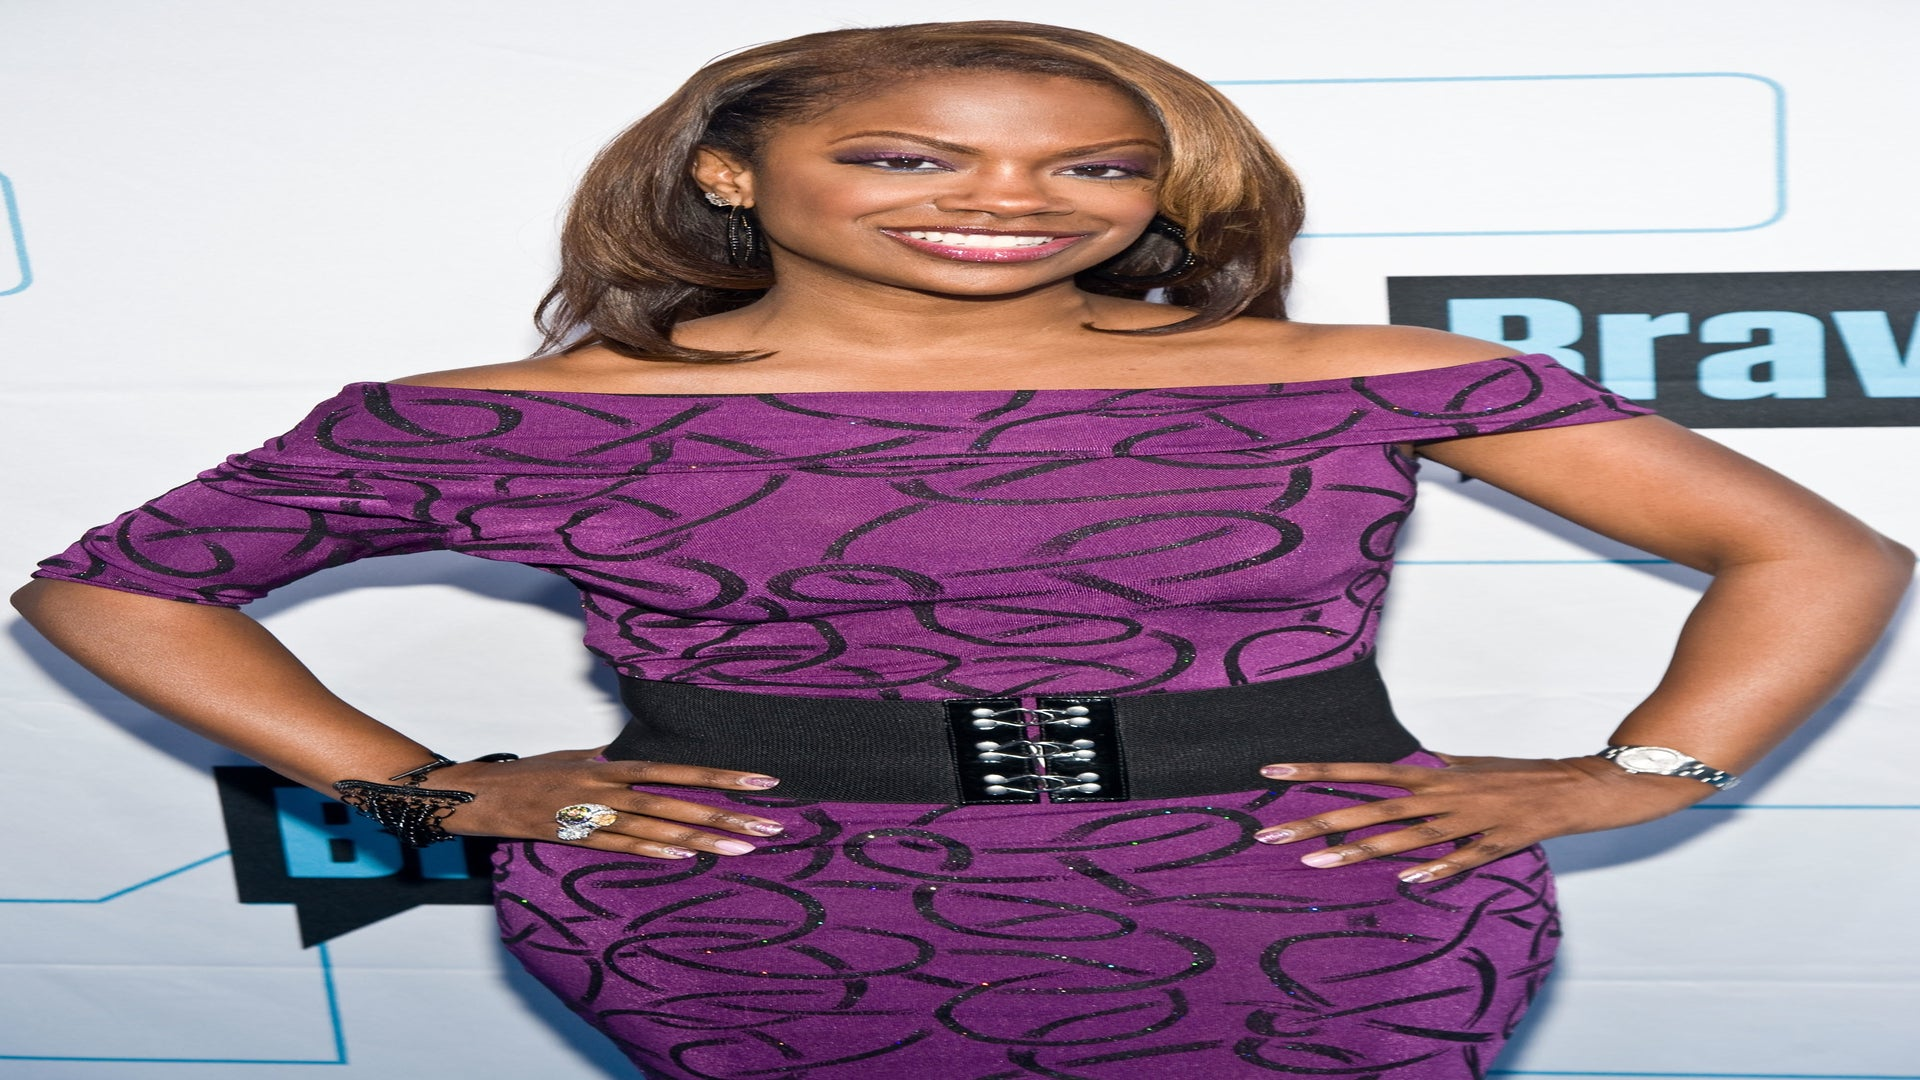 Kandi Burruss Turns Up the Heat with Sex Toy Line